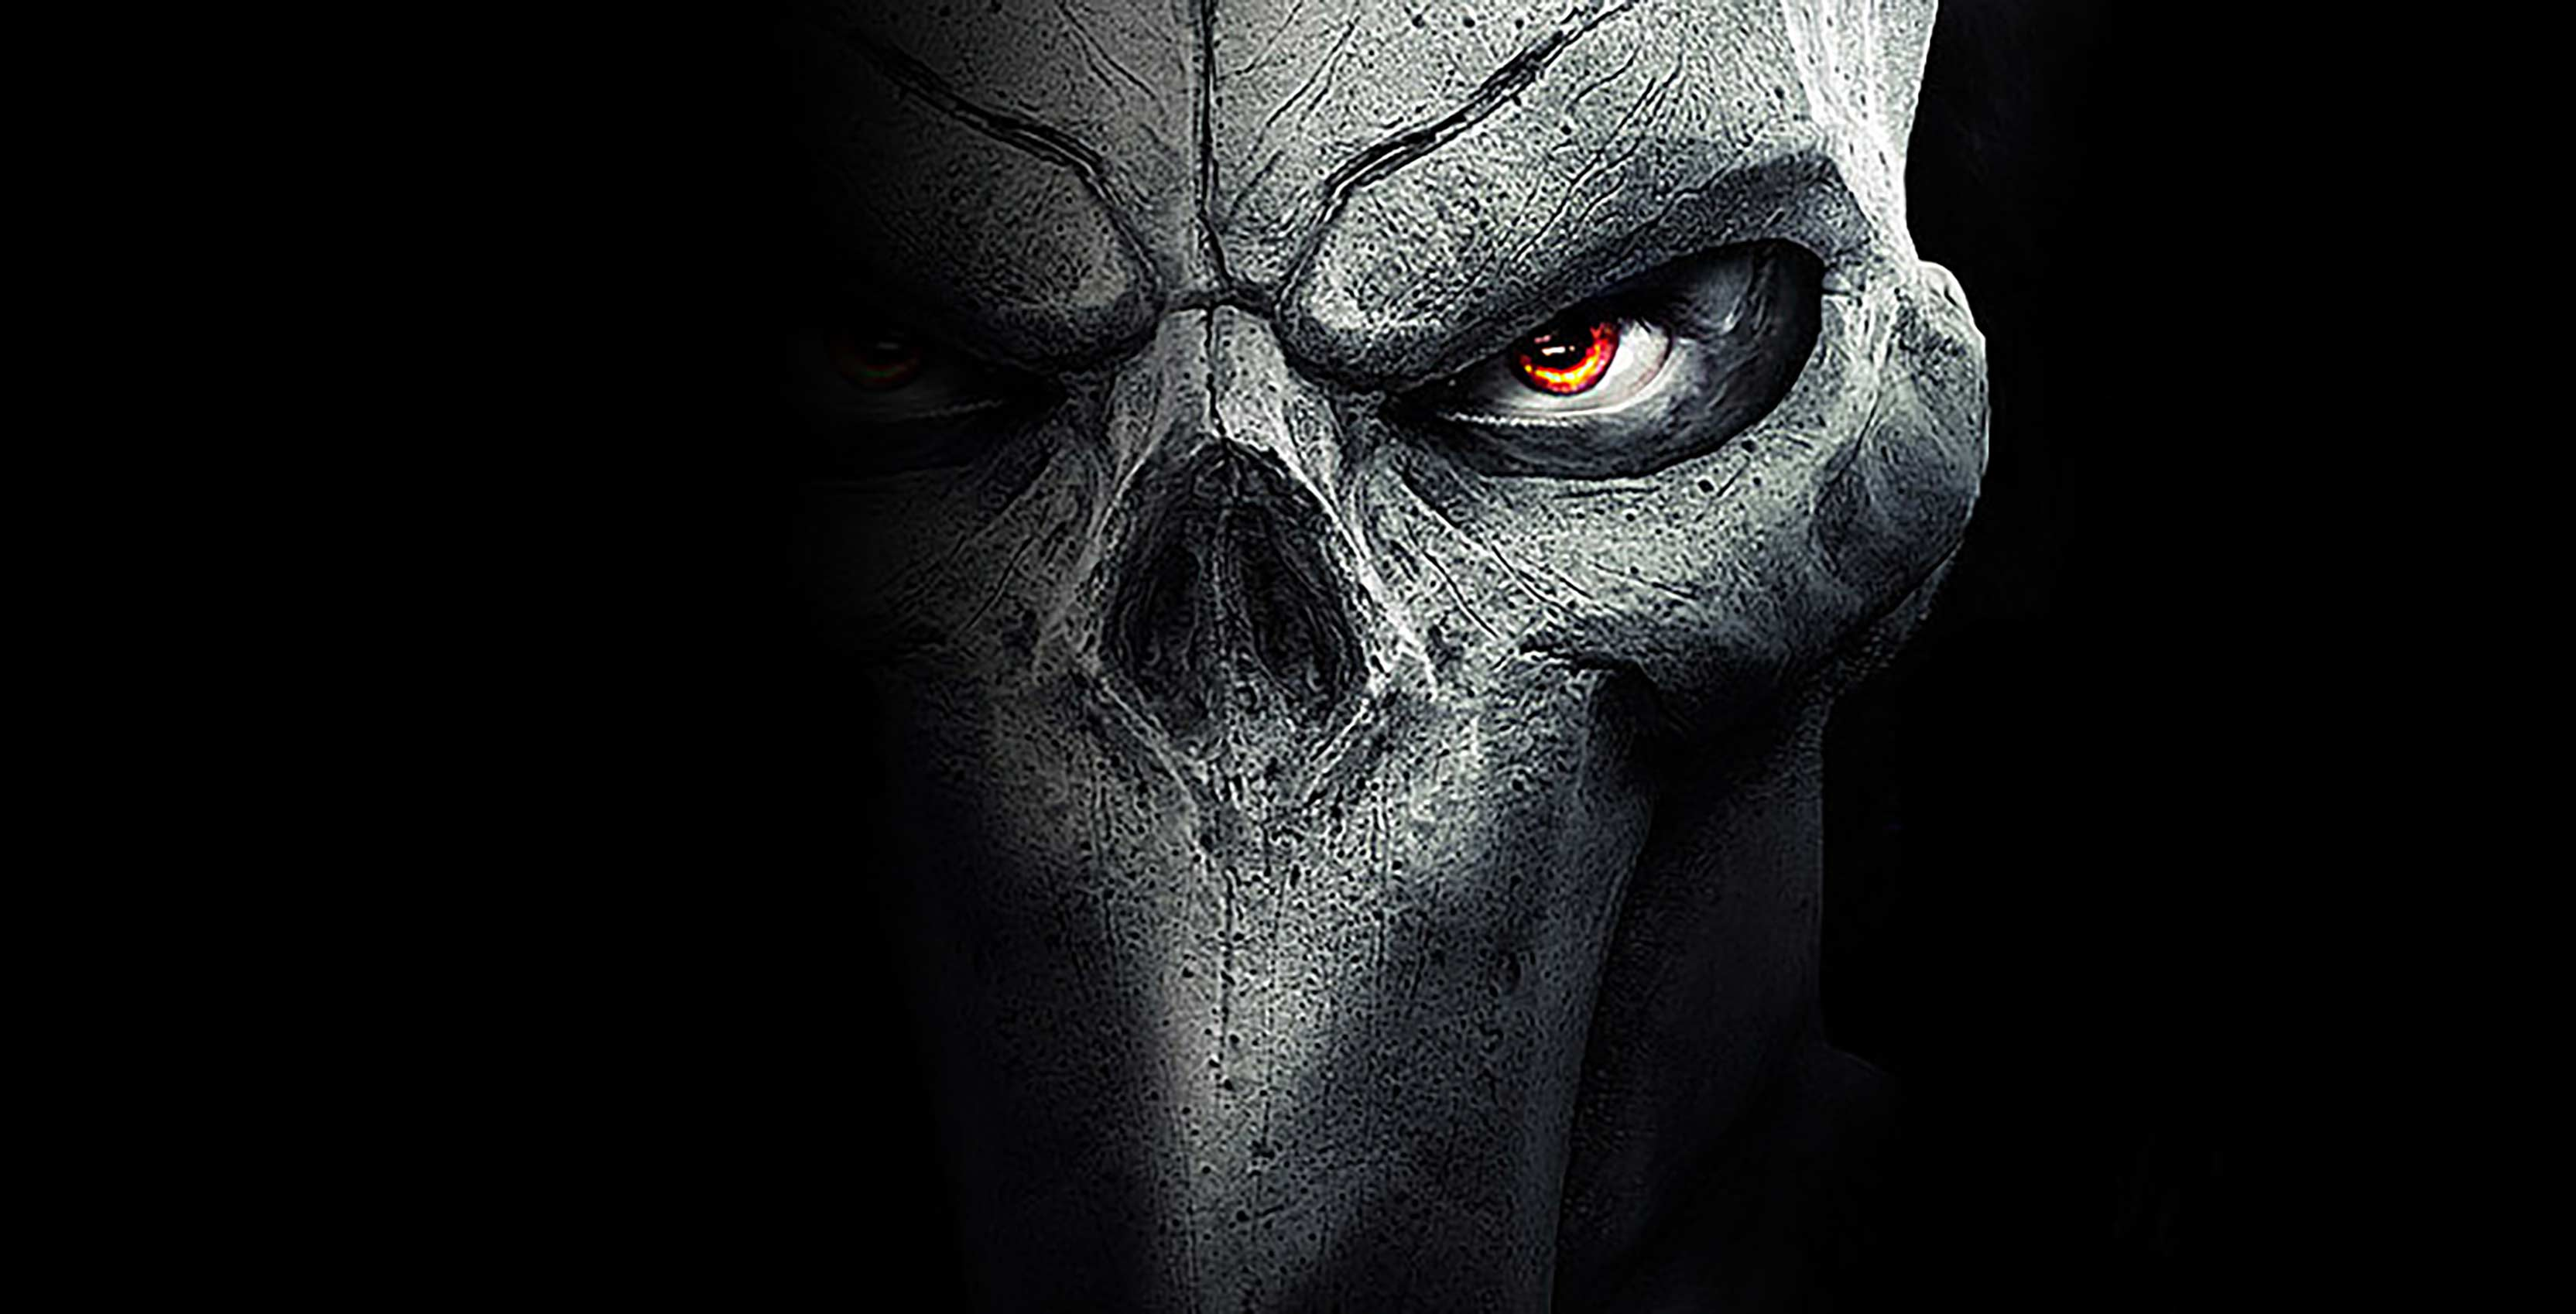 Darksiders by THQ Nordic